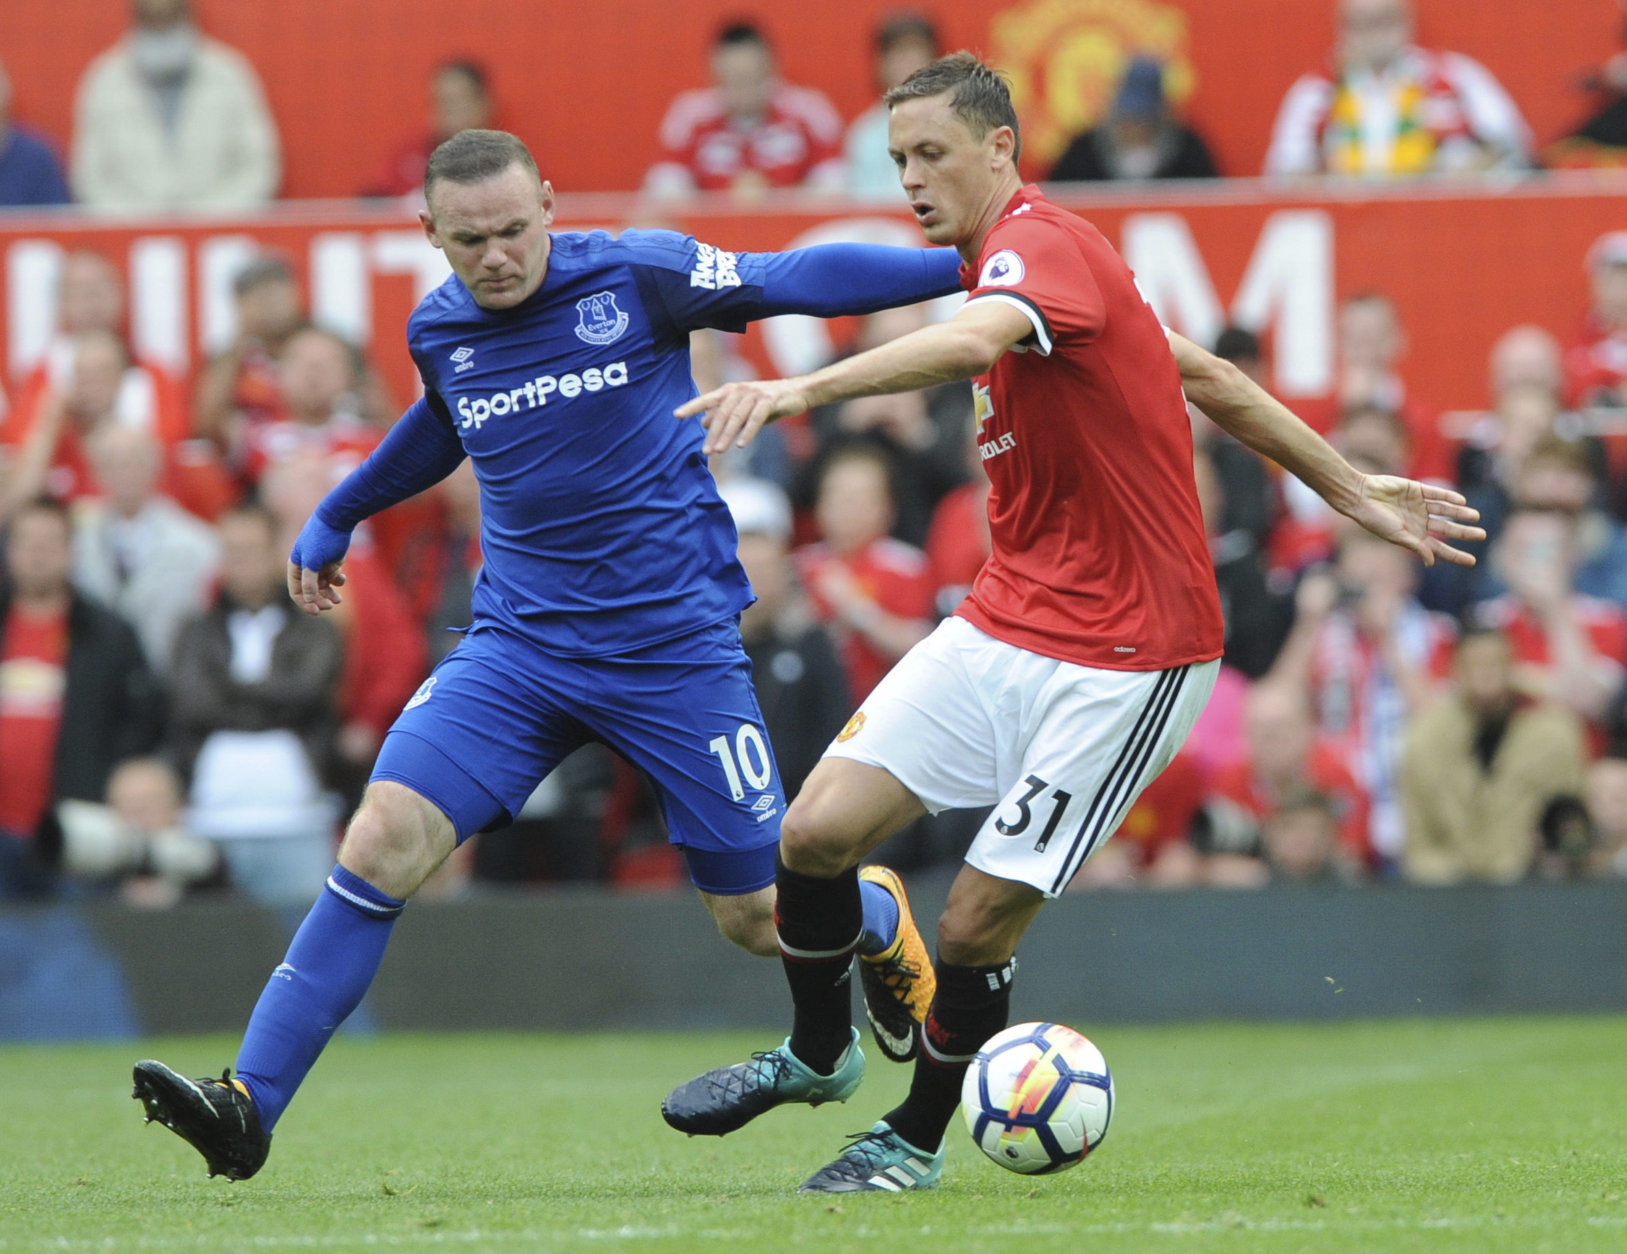 Everton's Wayne Rooney, left, and Manchester United's Nemanja Matic battle for the ball during the English Premier League soccer match between Manchester United and Everton at Old Trafford in Manchester, England, Sunday, Sept. 17, 2017. (AP Photo/Rui Vieira)